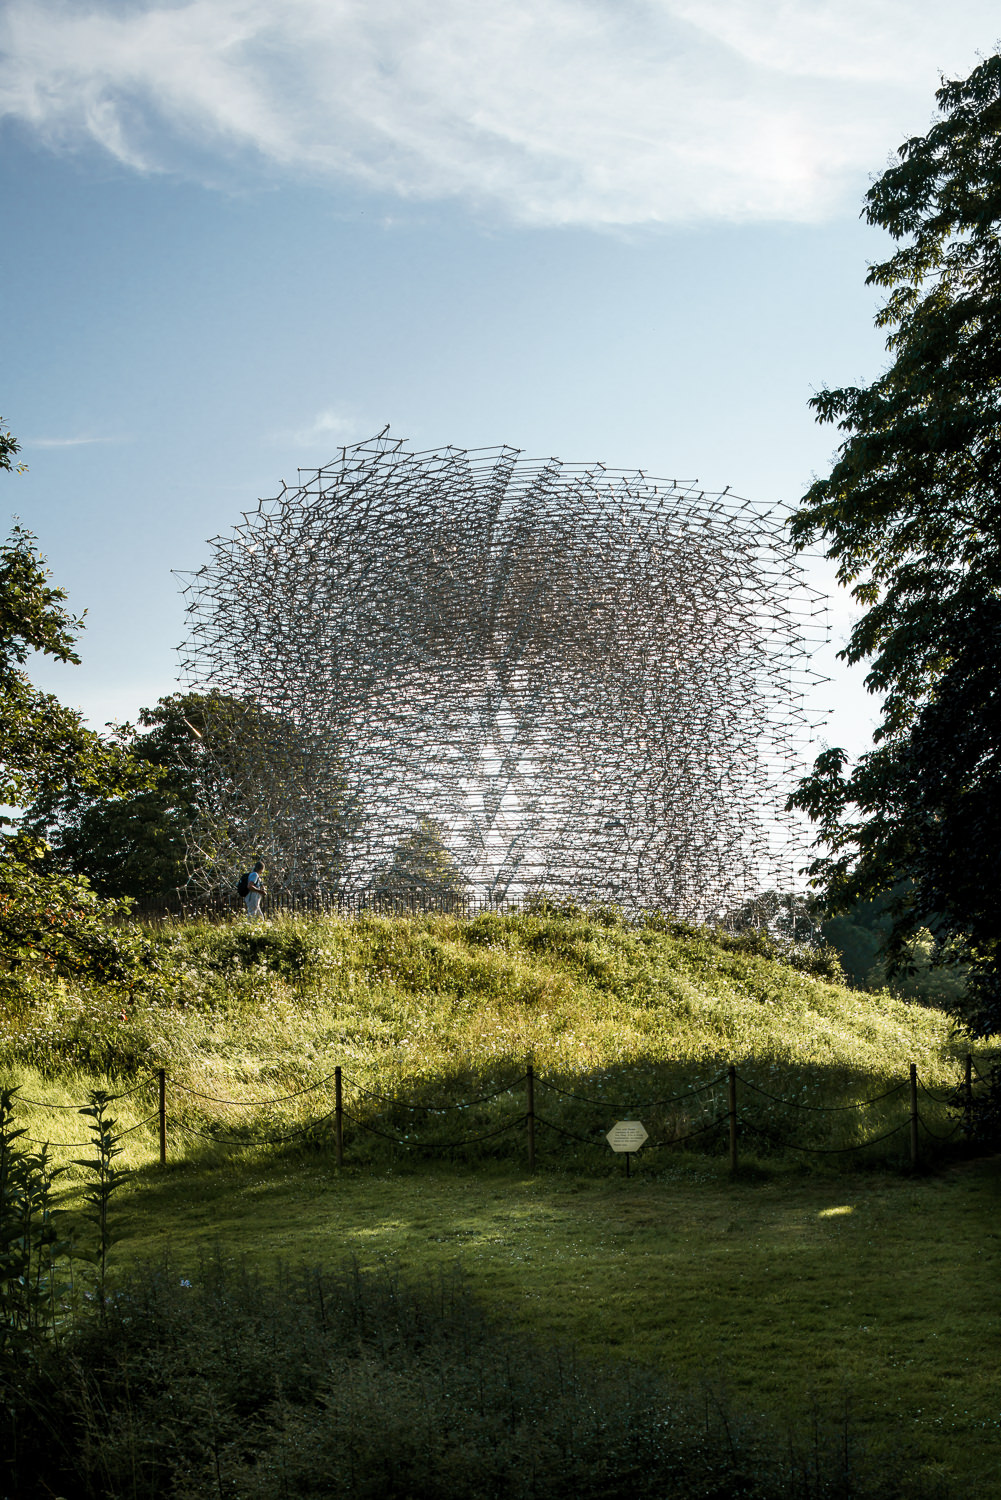 Morning at  The Hive, Kew Gardens. Mark Hadden Architecture Photographer